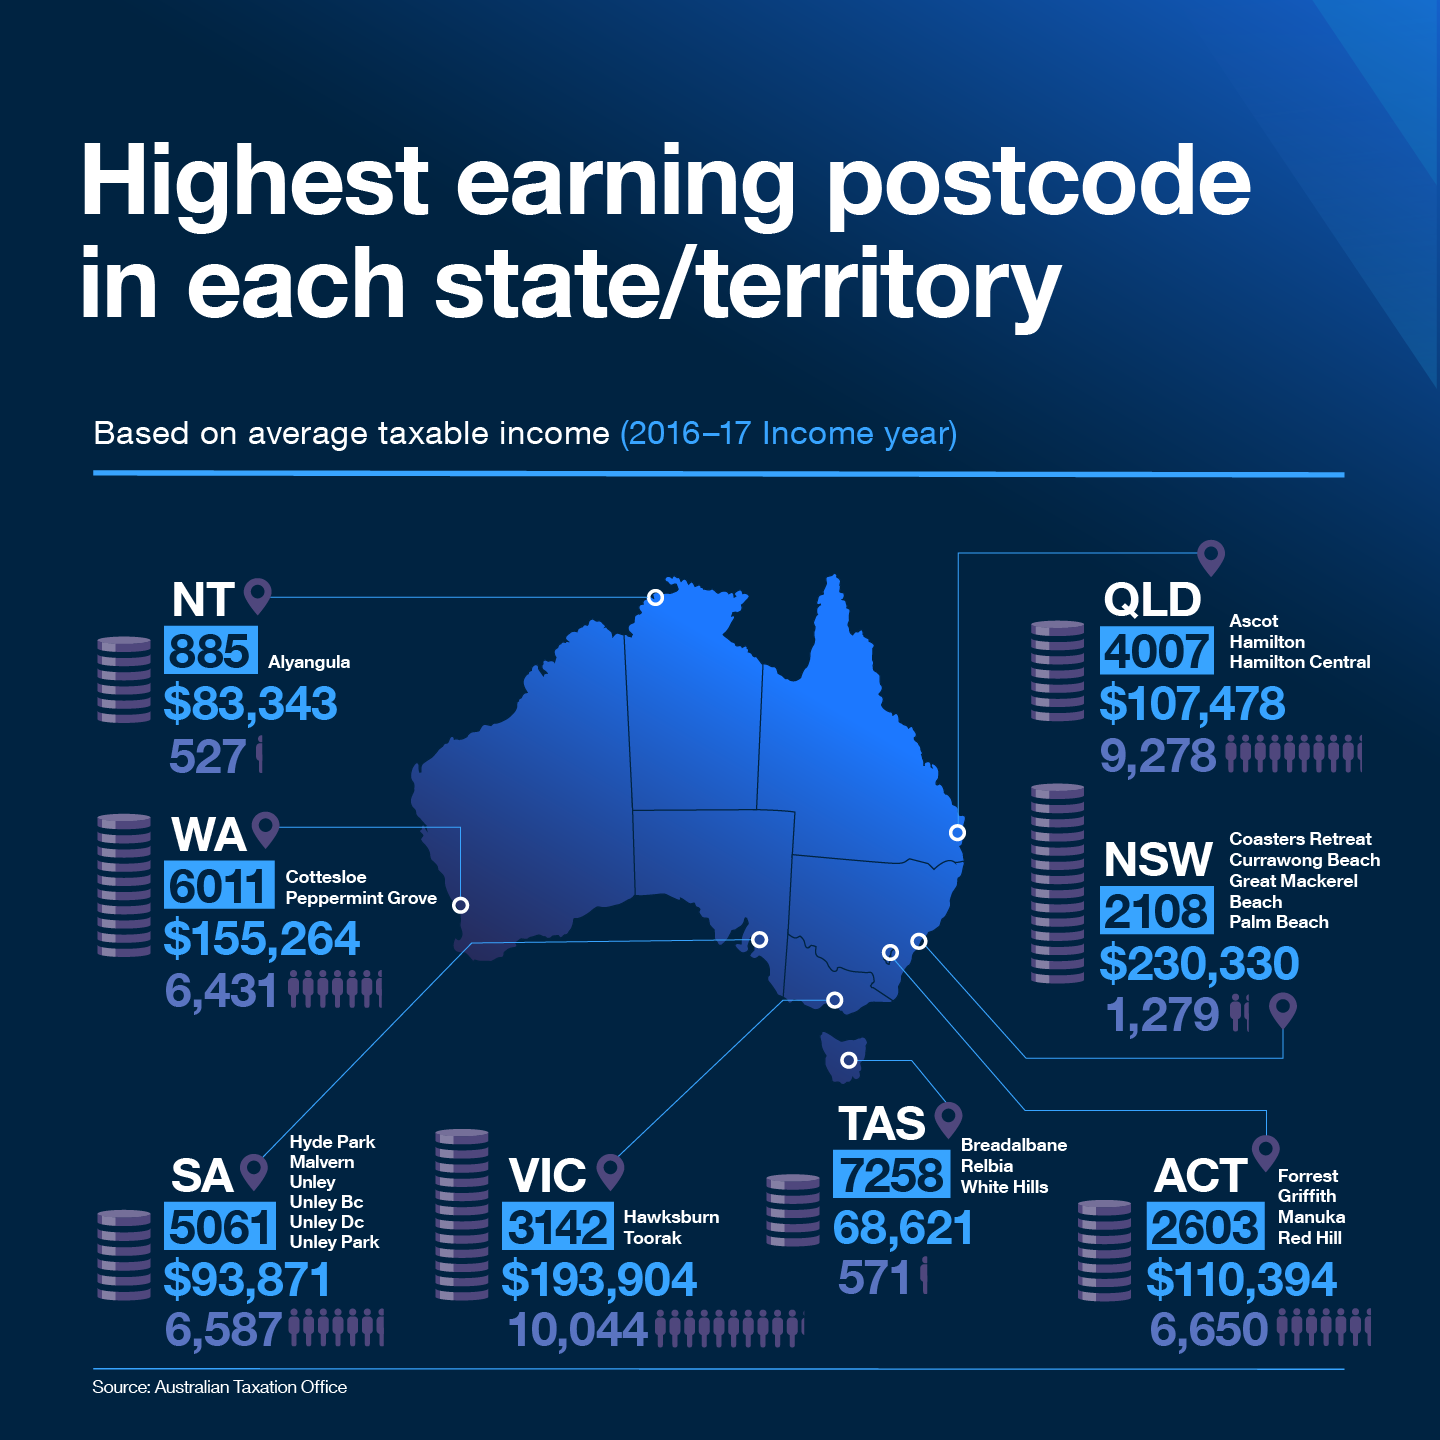 Based on average taxable income (2016-17 Income year)  In the Northern Territory, the highest taxable income of $83,343 was recorded in 885 postcode which covers Alyangula.   In WA, the highest taxable income of $155,264 was recorded in 6011 postcode which covers Cottleslow and Peppermint Grove.  In SA, the highest taxable income of $93,871 was recorded in 5061 postcode which covers Hyde Park, Malvern, Unley, Unley bc, Unley Dc and Unley Park.   In VIC, the highest taxable income of $193,904 was recorded in 3142 postcode which covers Hawksburn and Toorak.   In TAS, the highest taxable income of $68,621 was recorded in 7258 postcode which covers Breadlbane, Relbia and White Hills.  In the ACT, the highest taxable income of $110,394 was recorded in 2603 postcode which covers Forrest, Griffith, Manuka and Red Hill.  In NSW, the highest taxable income of $230,330 was recorded in 2108 postcode which covers Coasters Retreat, Currawong Beach, Great Mackerel Beach and Palm Beach.  In QLD, the highest taxable income of $107,478 was recorded in 4007 postcode which covers Ascot, Hamilton and Hamilton Central.